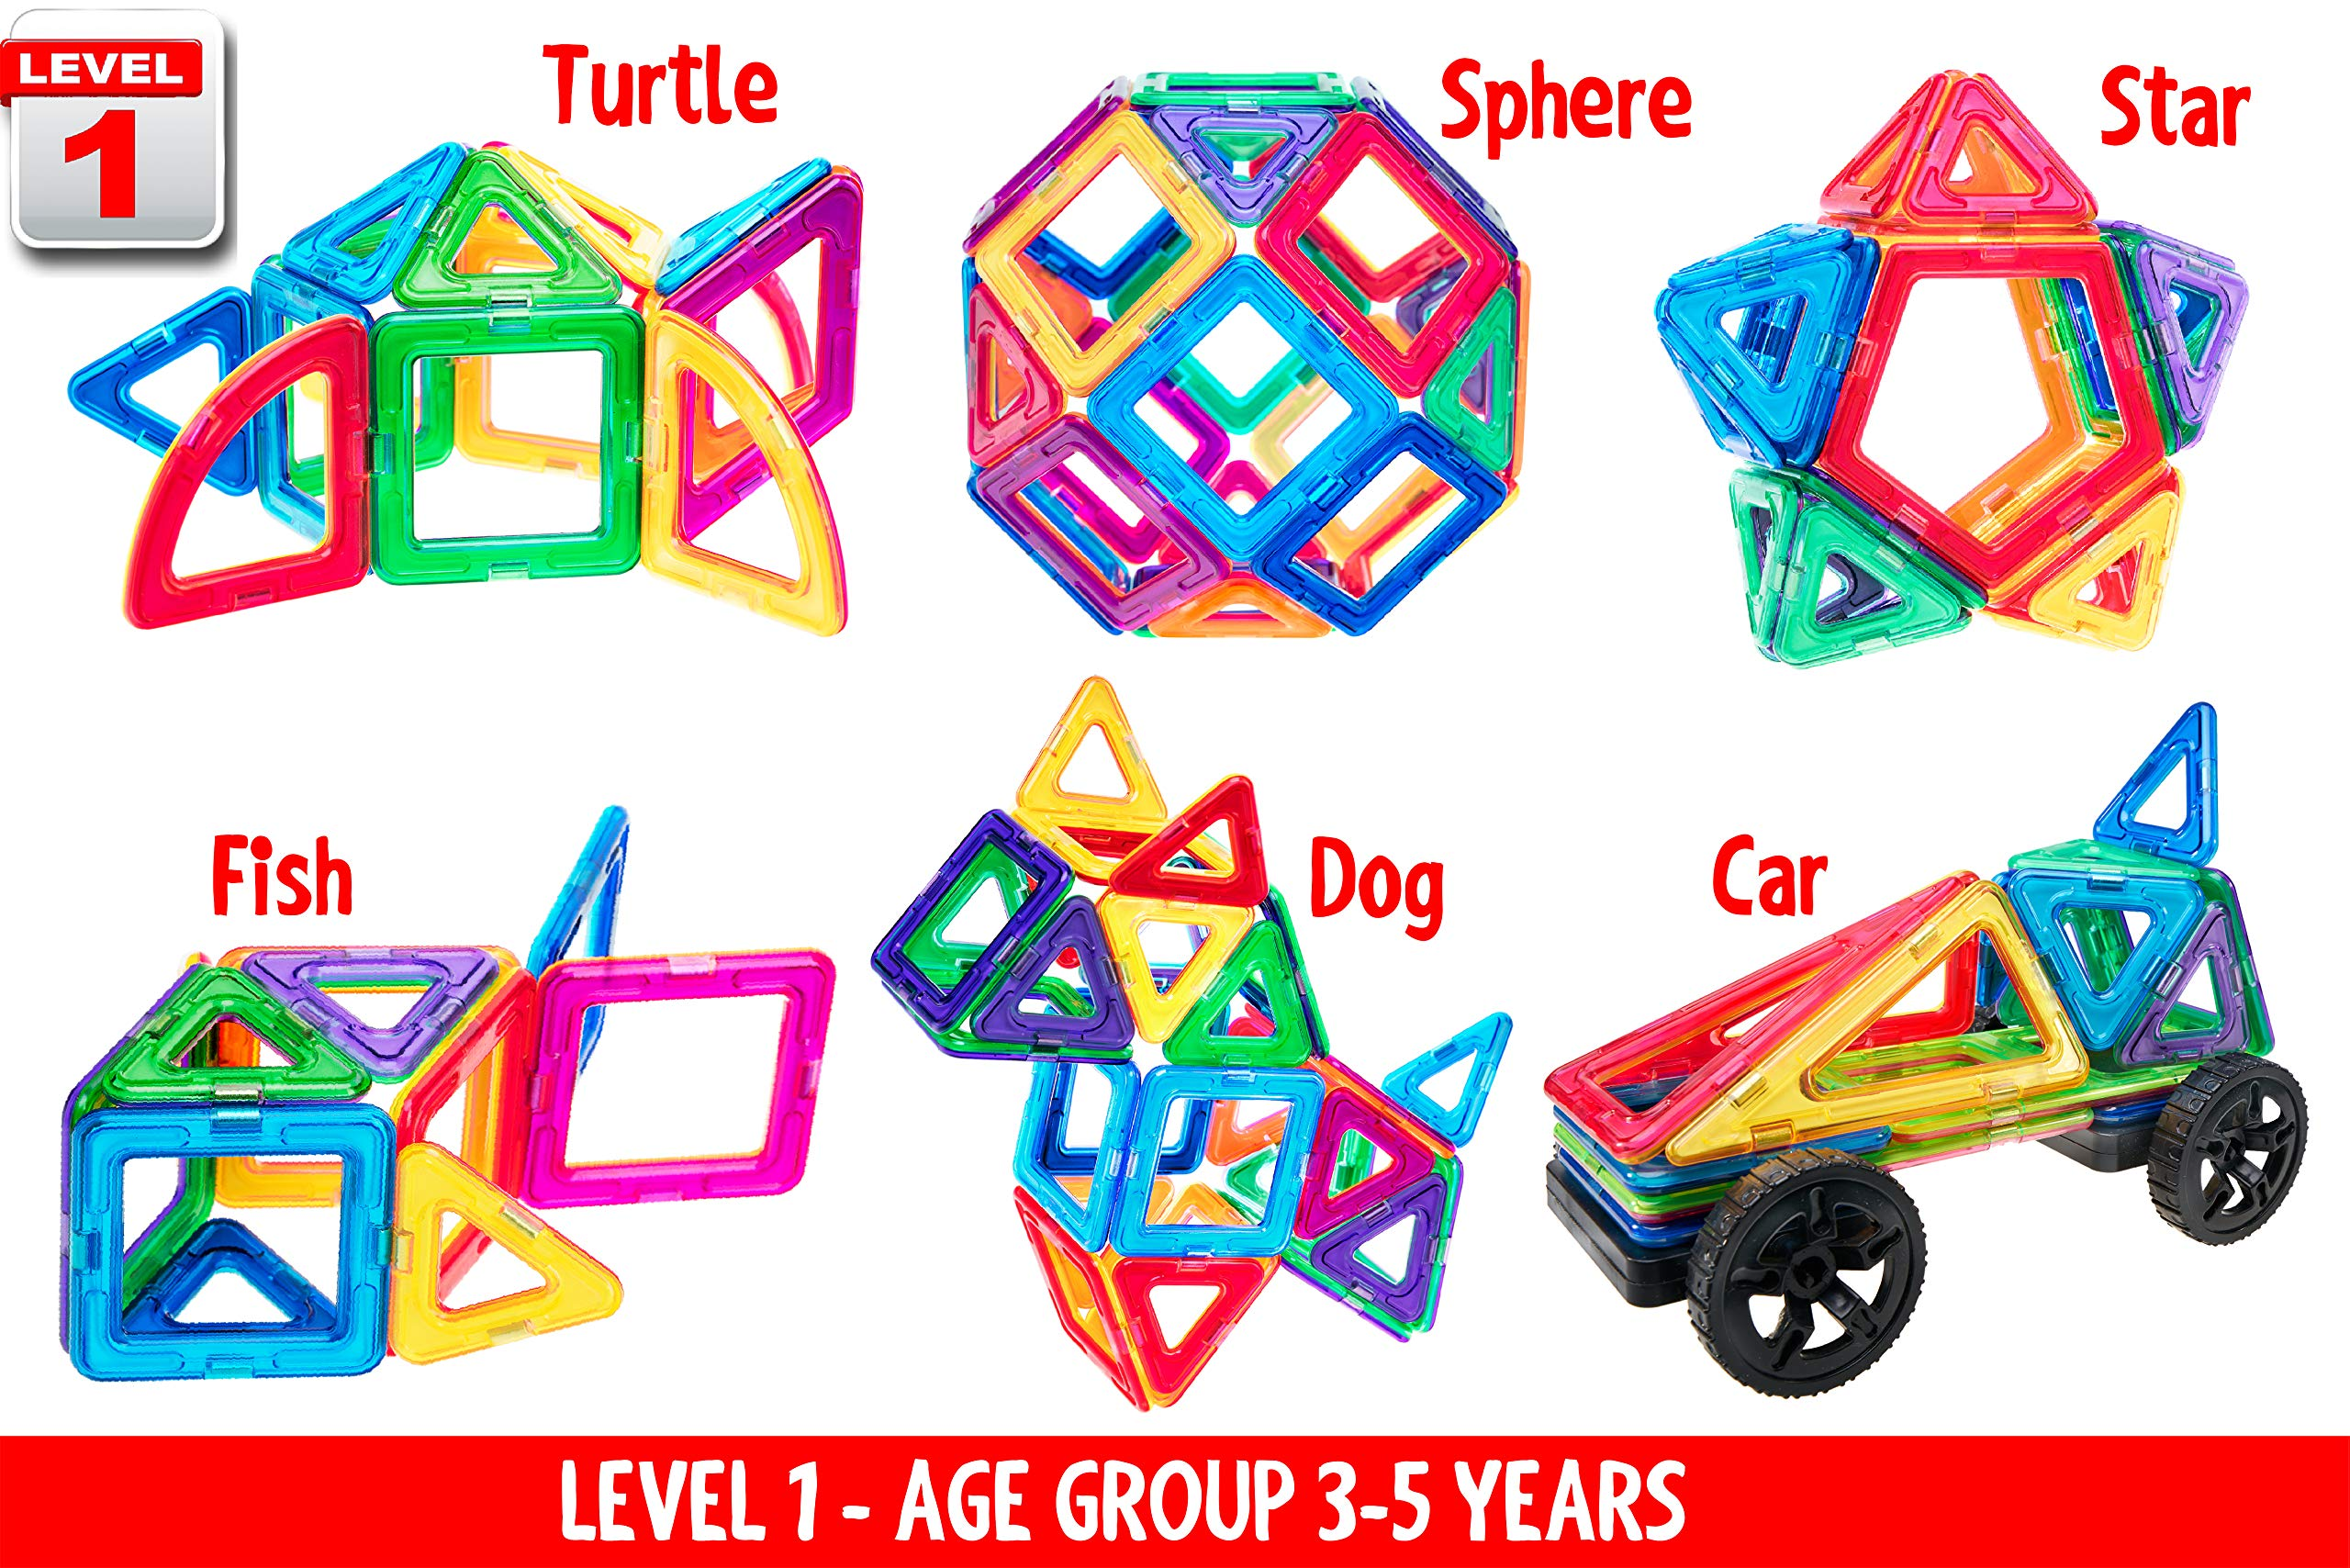 Magnetic Building Blocks for Kids – Creatone Advanced 112 PCS Ultra Strong 3D Set – Creativity, Imagination, Concentration, Hand-to-Eye and Motor Skills Stimulating and Developing Magnet Tiles by Creatone (Image #3)